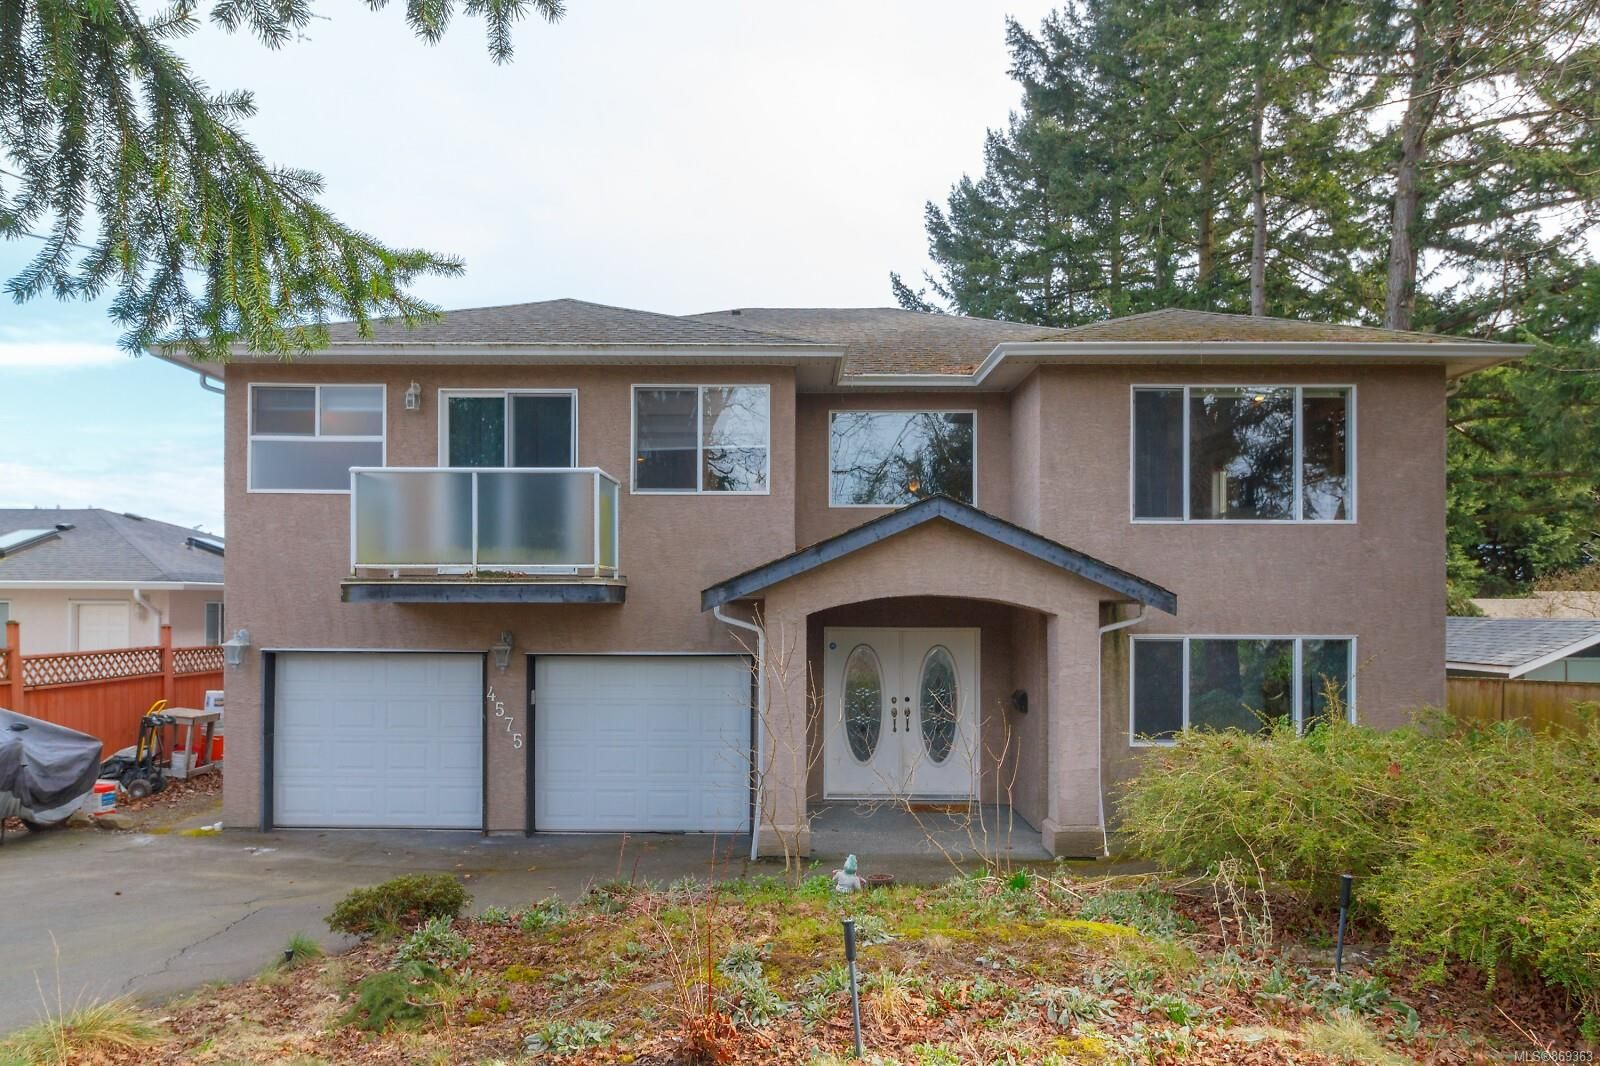 Main Photo: 4575 Viewmont Ave in : SW Royal Oak House for sale (Saanich West)  : MLS®# 869363